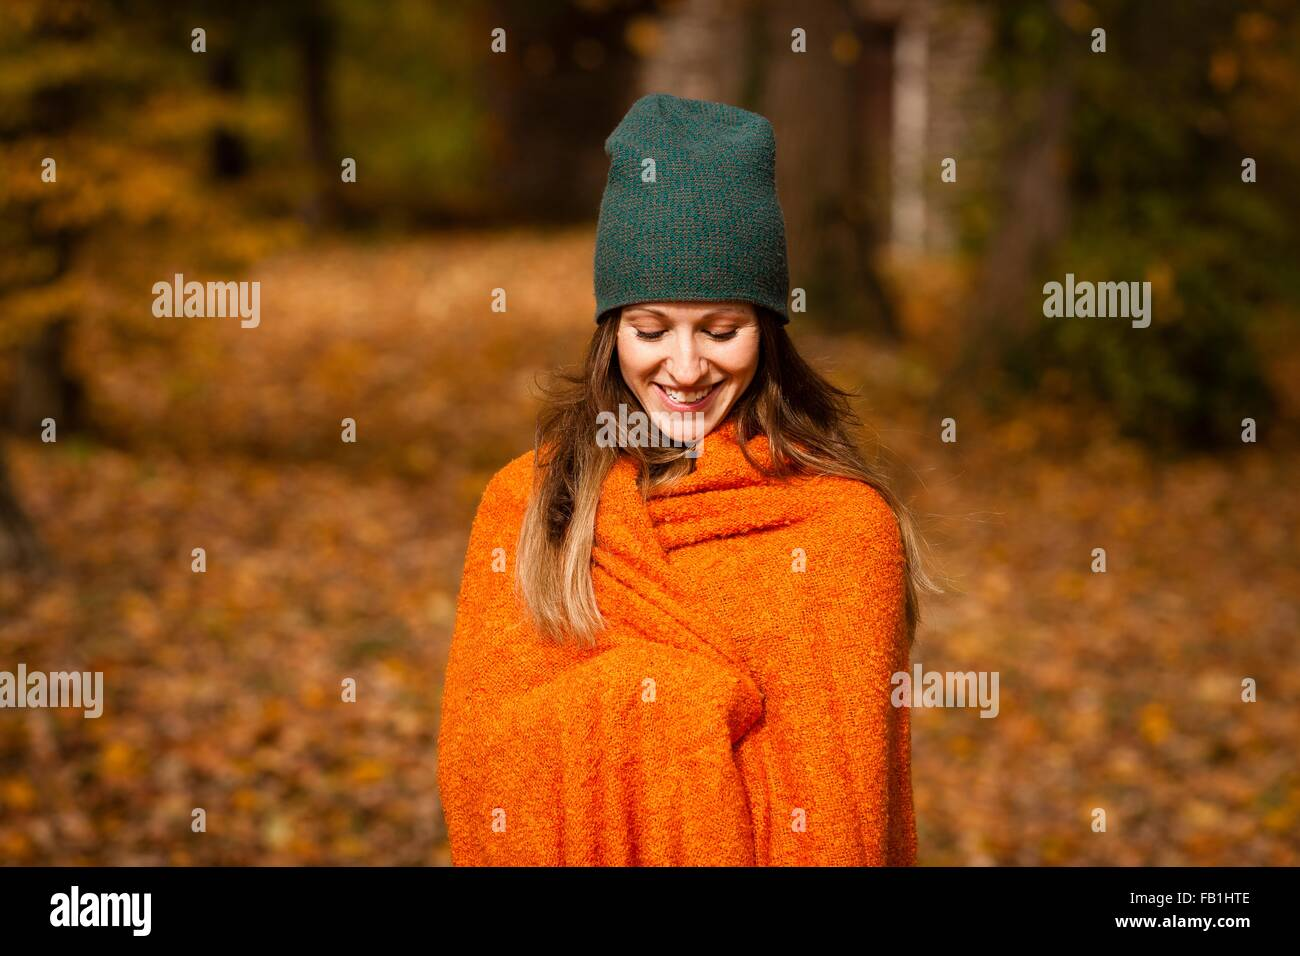 Young woman wrapped in orange blanket in autumn forest - Stock Image